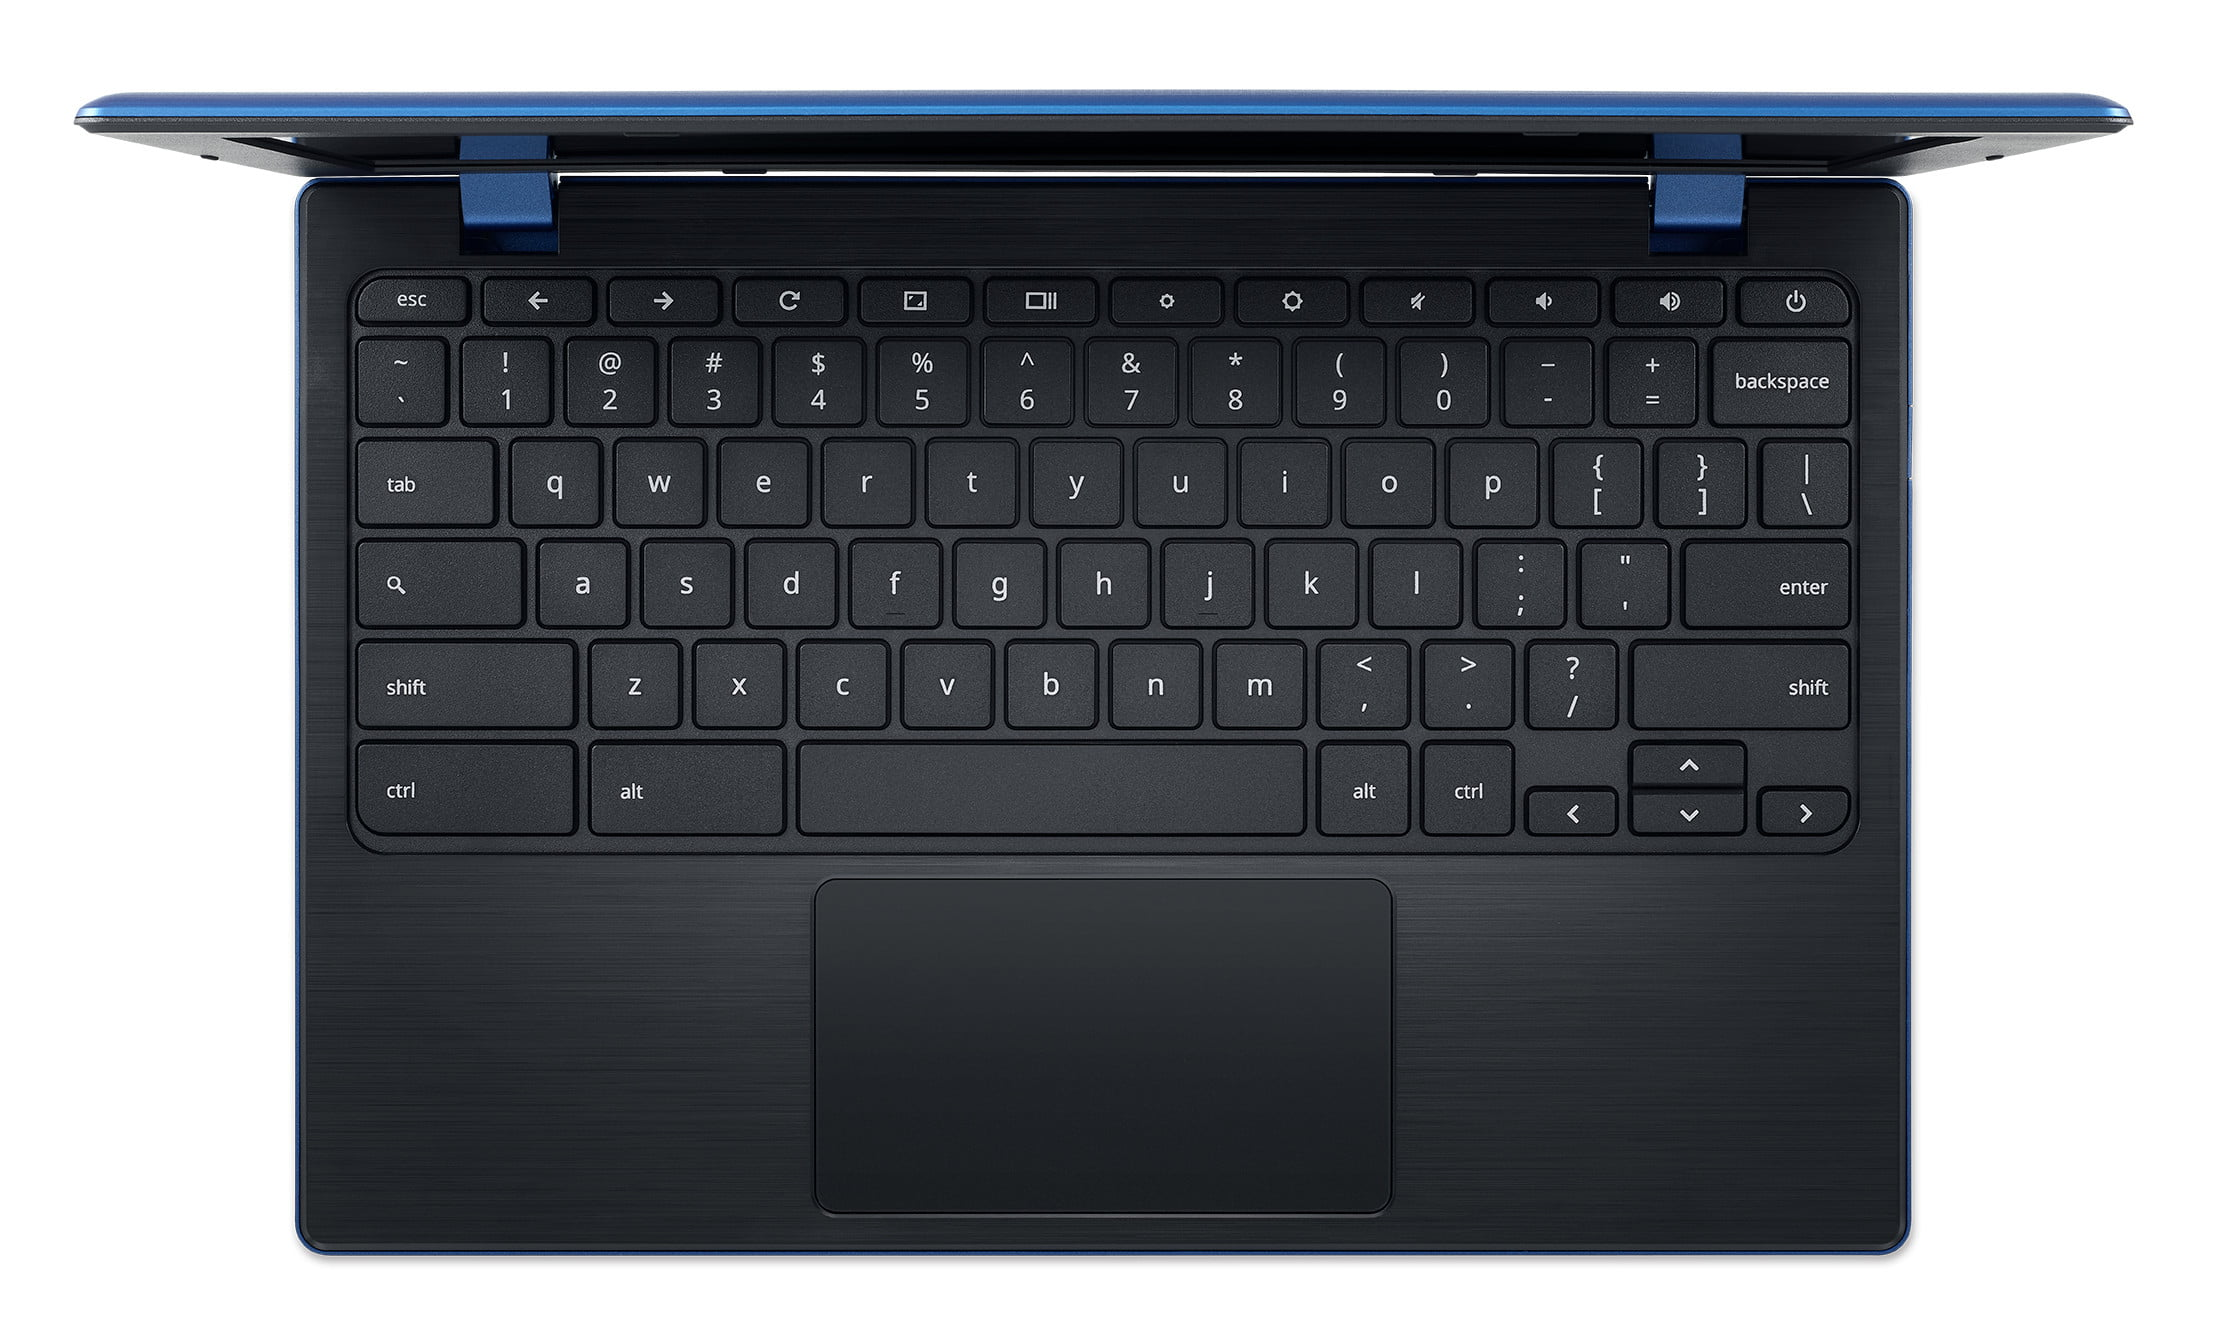 acer laptop swift 7 news ces 2018 chromebook 11  cb311 8h and 8ht 06